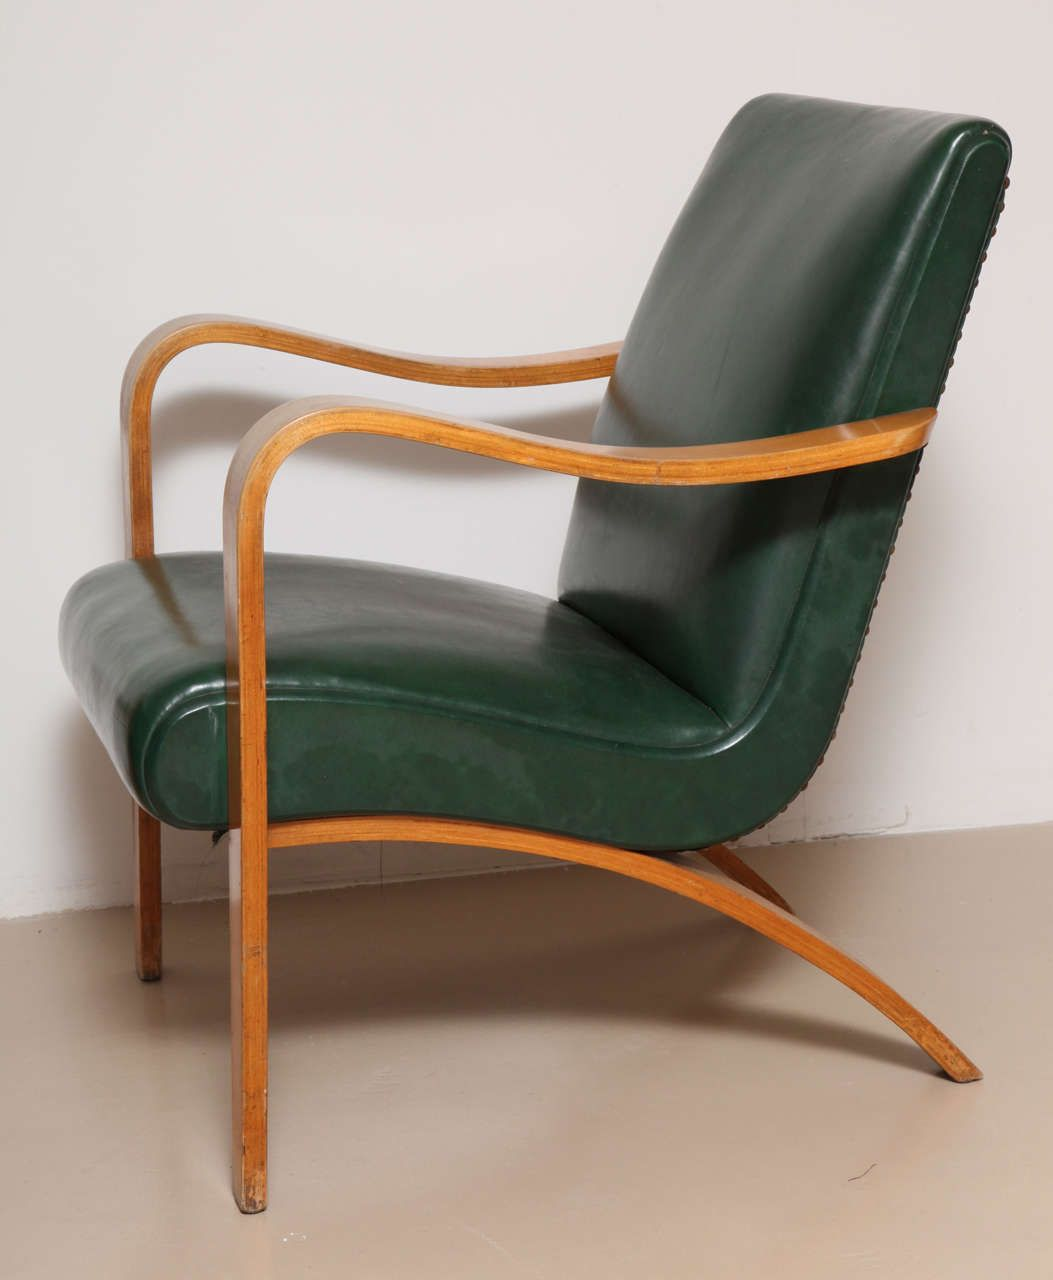 Bentwood lounge chair - Pair Of 1940s Thonet Bentwood Lounge Chairs